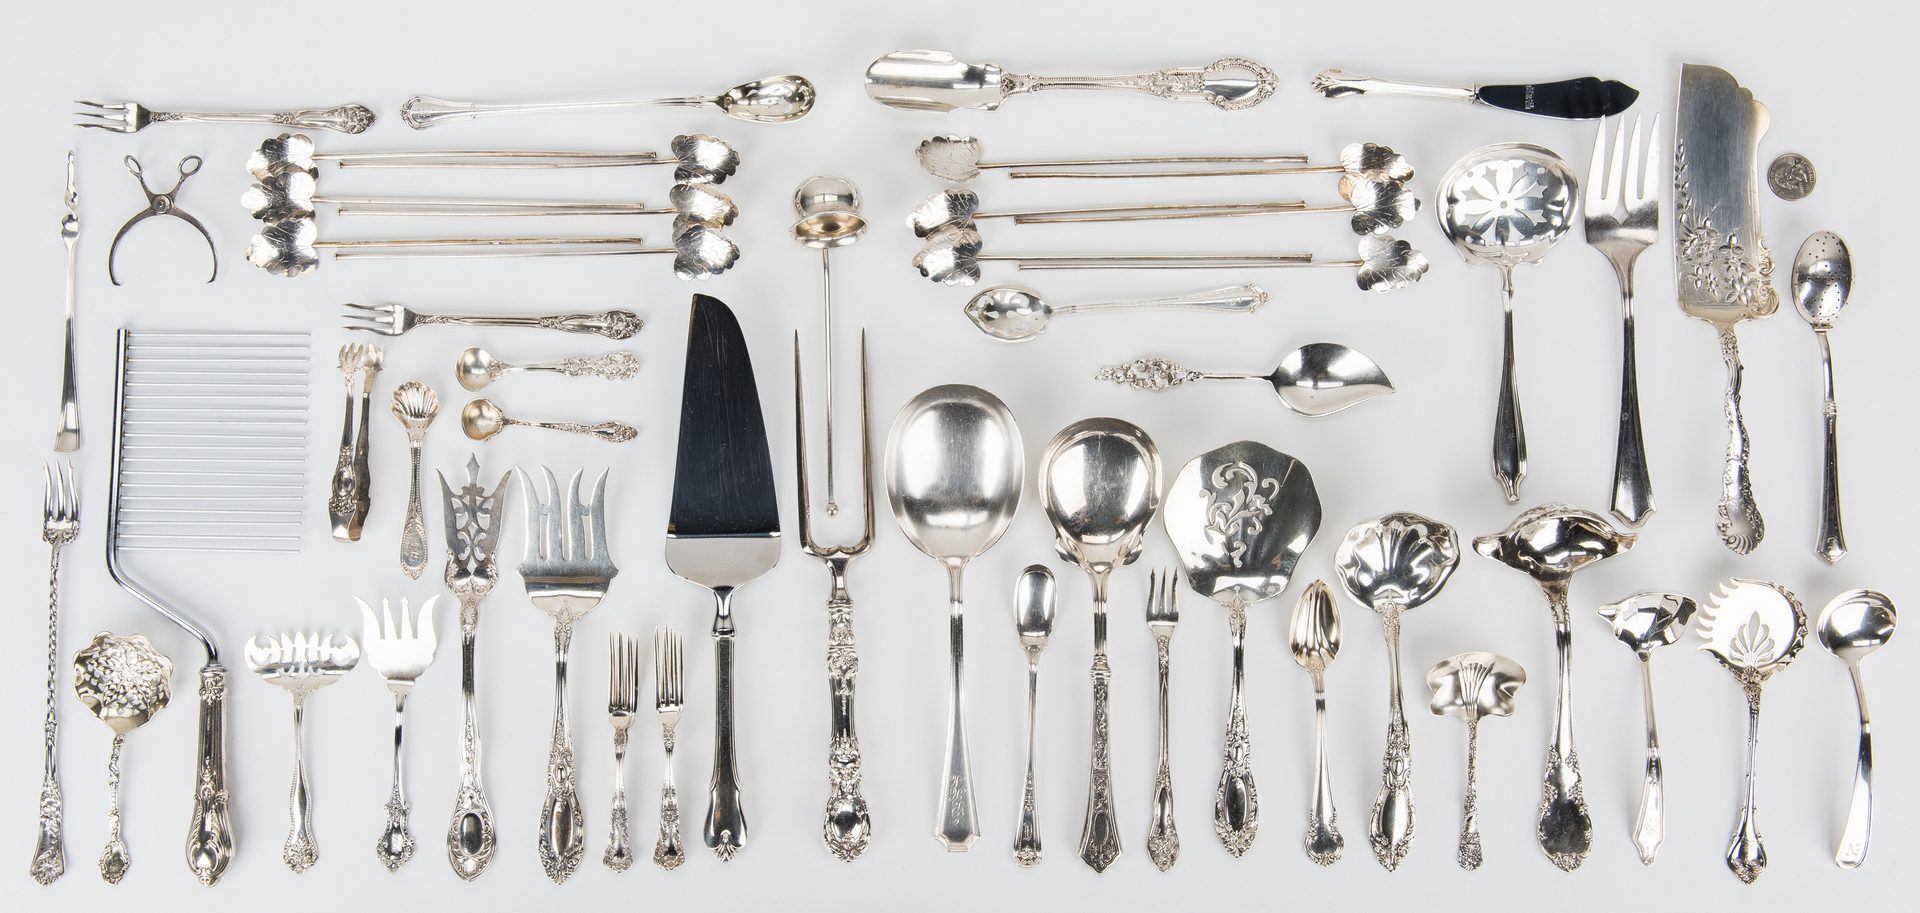 Lot 768: 57 pcs. Flatware, incl. strawberry forks